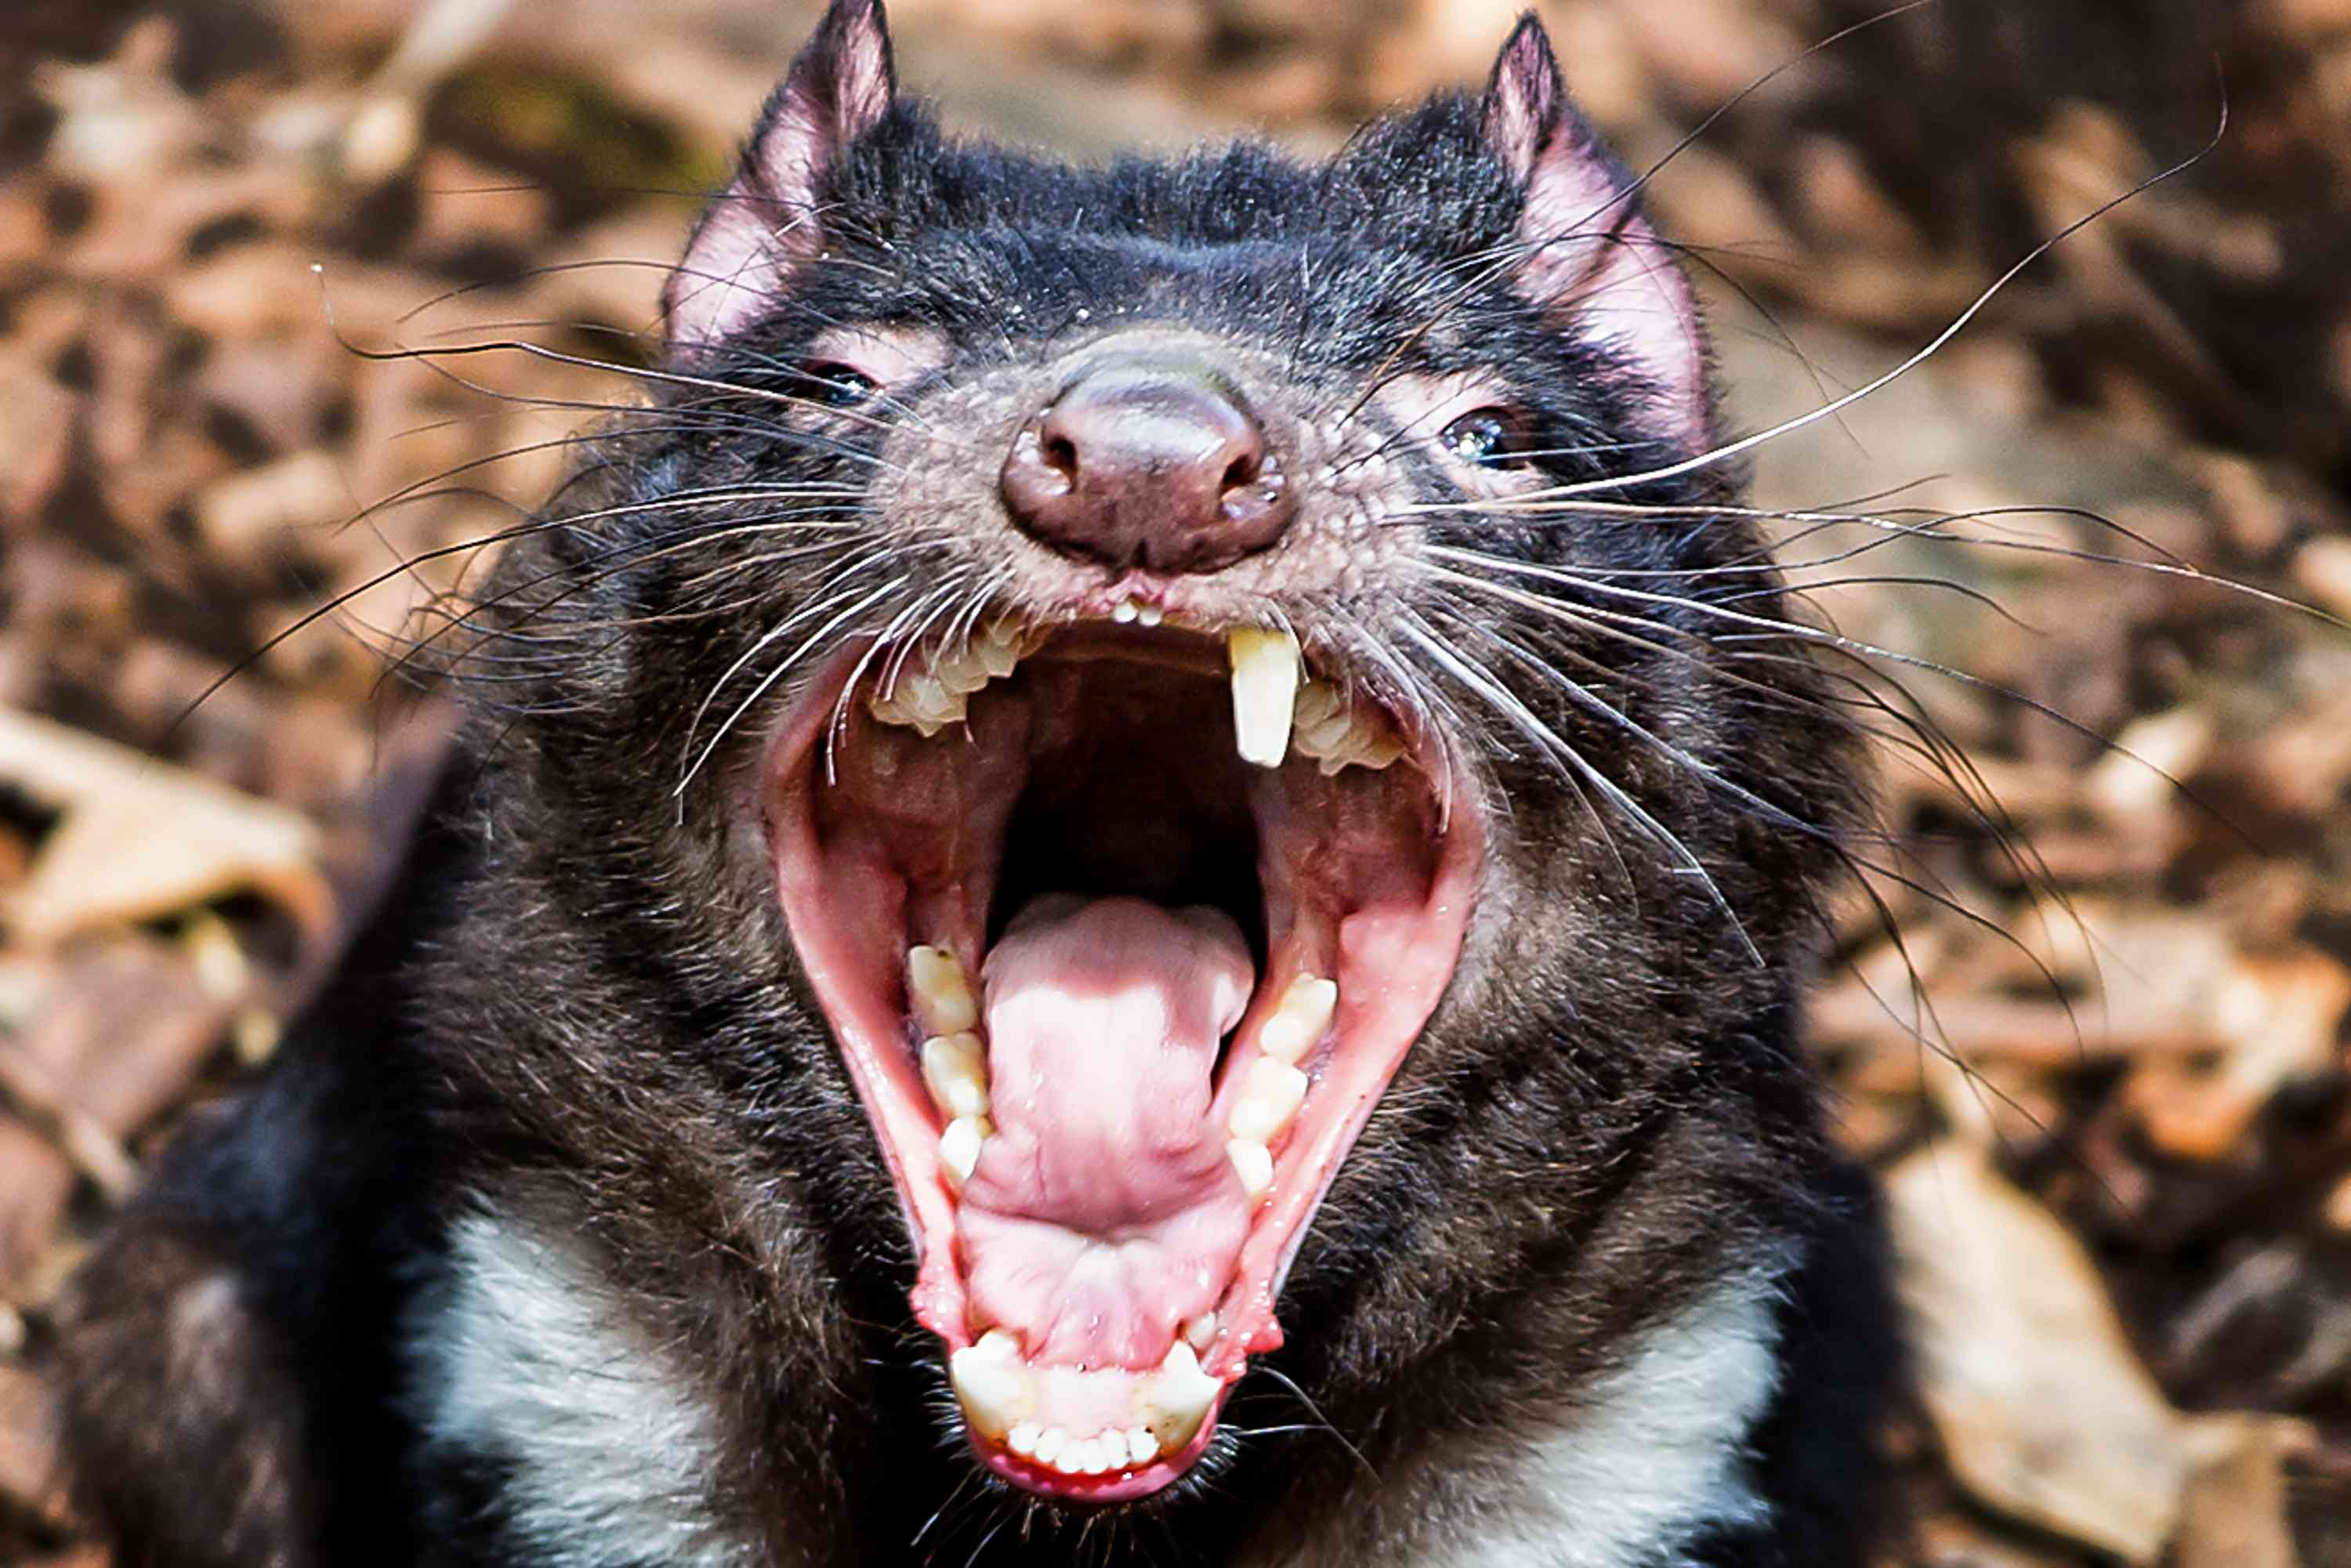 A tasmanian devil with open mouth bares its teeth.